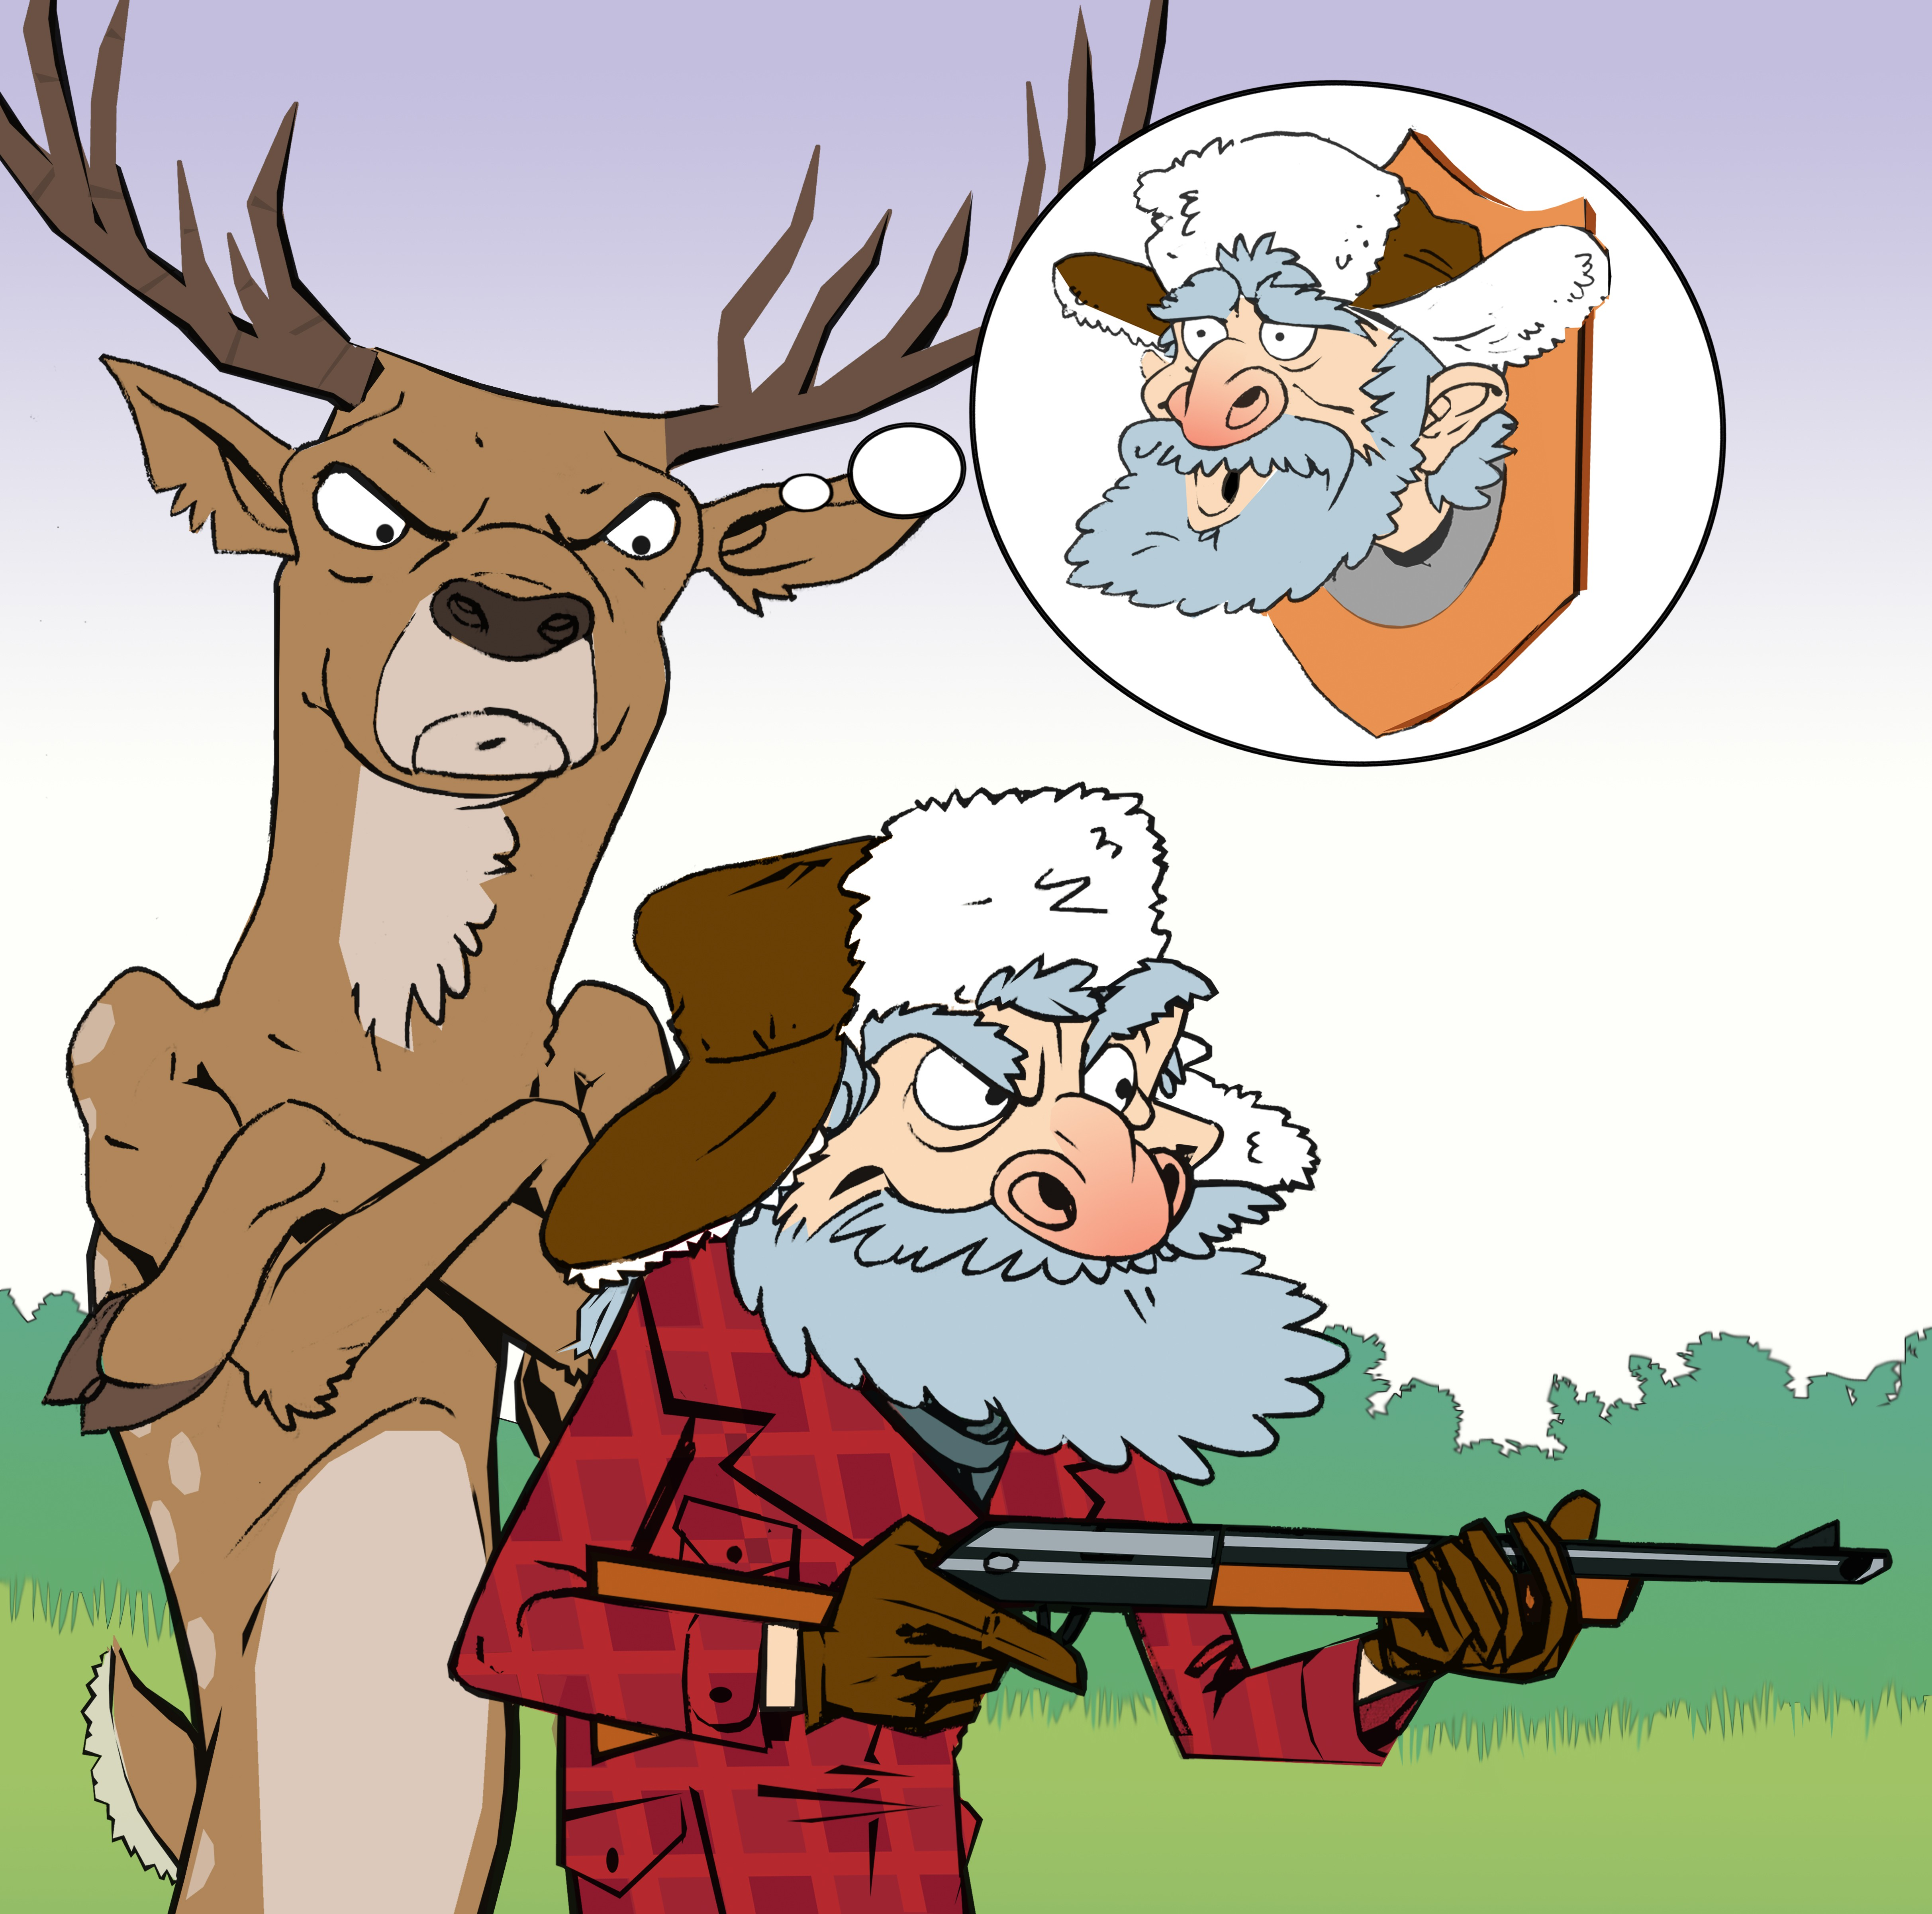 Design a Comedy CD front for 'The Best Deer Hunting Songs Ever'